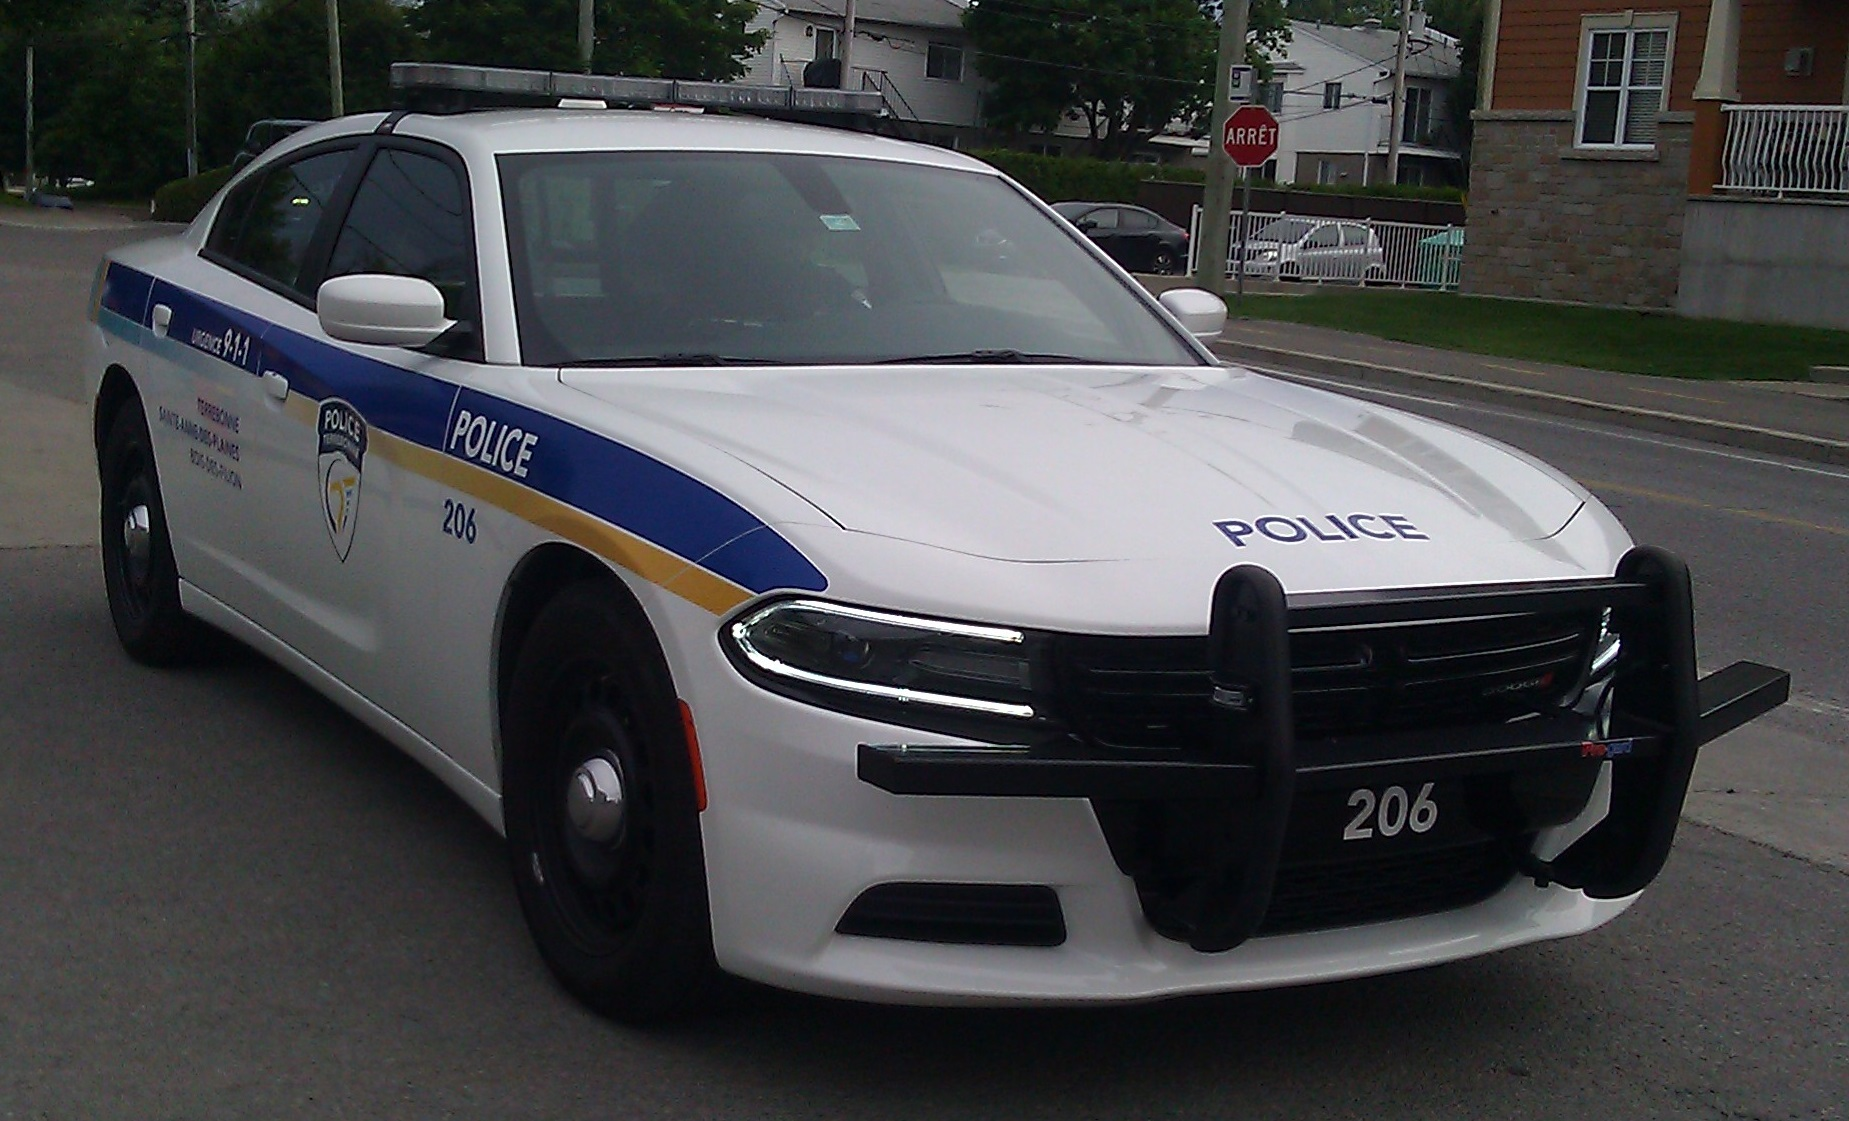 fichier voiture de police terrebonne dodge charger wikip dia. Black Bedroom Furniture Sets. Home Design Ideas